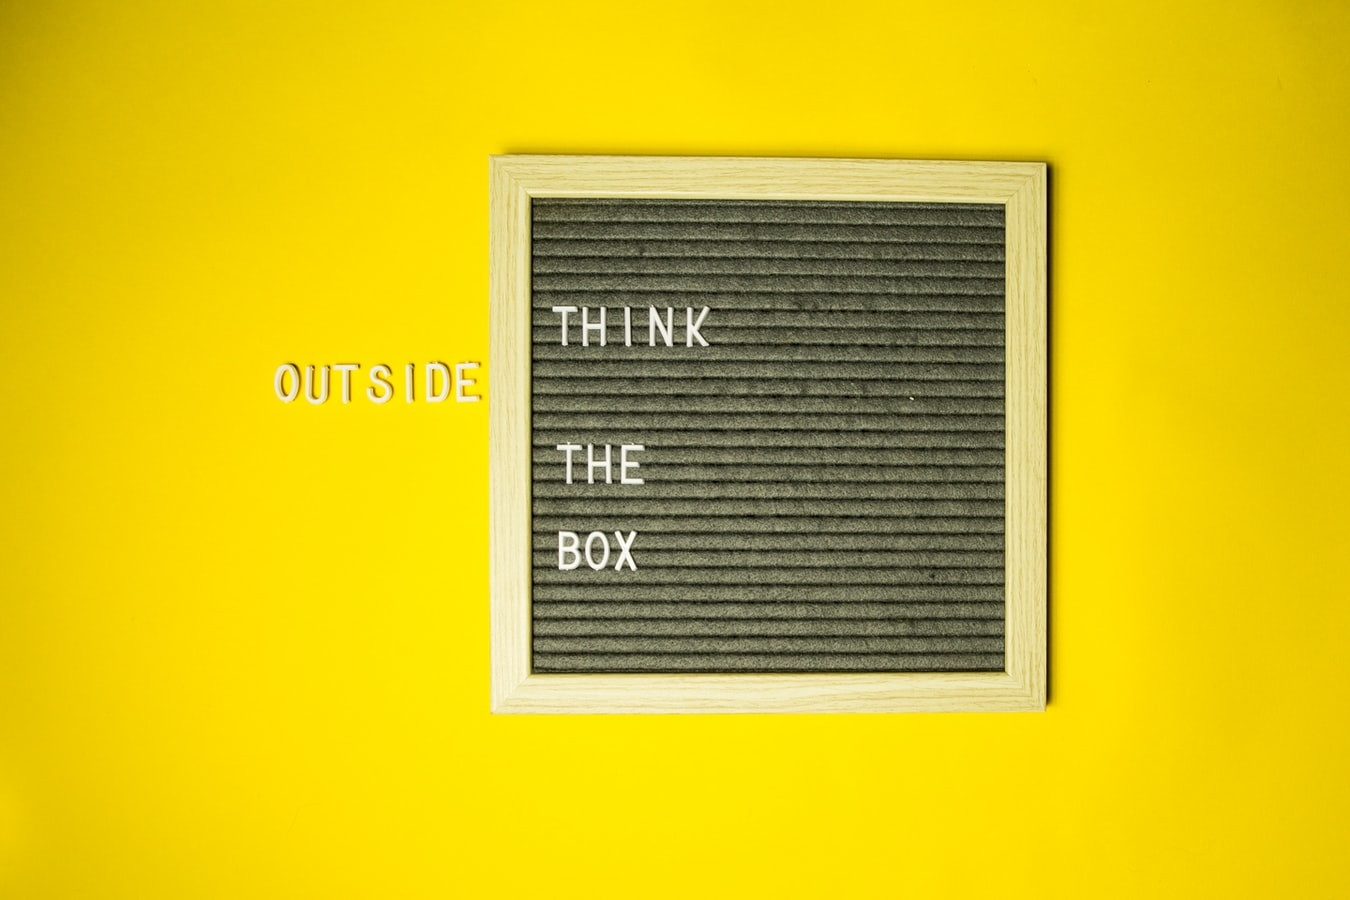 podcast-think-outside-box.jpg.13d5af9bf4419b0fe8fa23db30e25e68.jpg